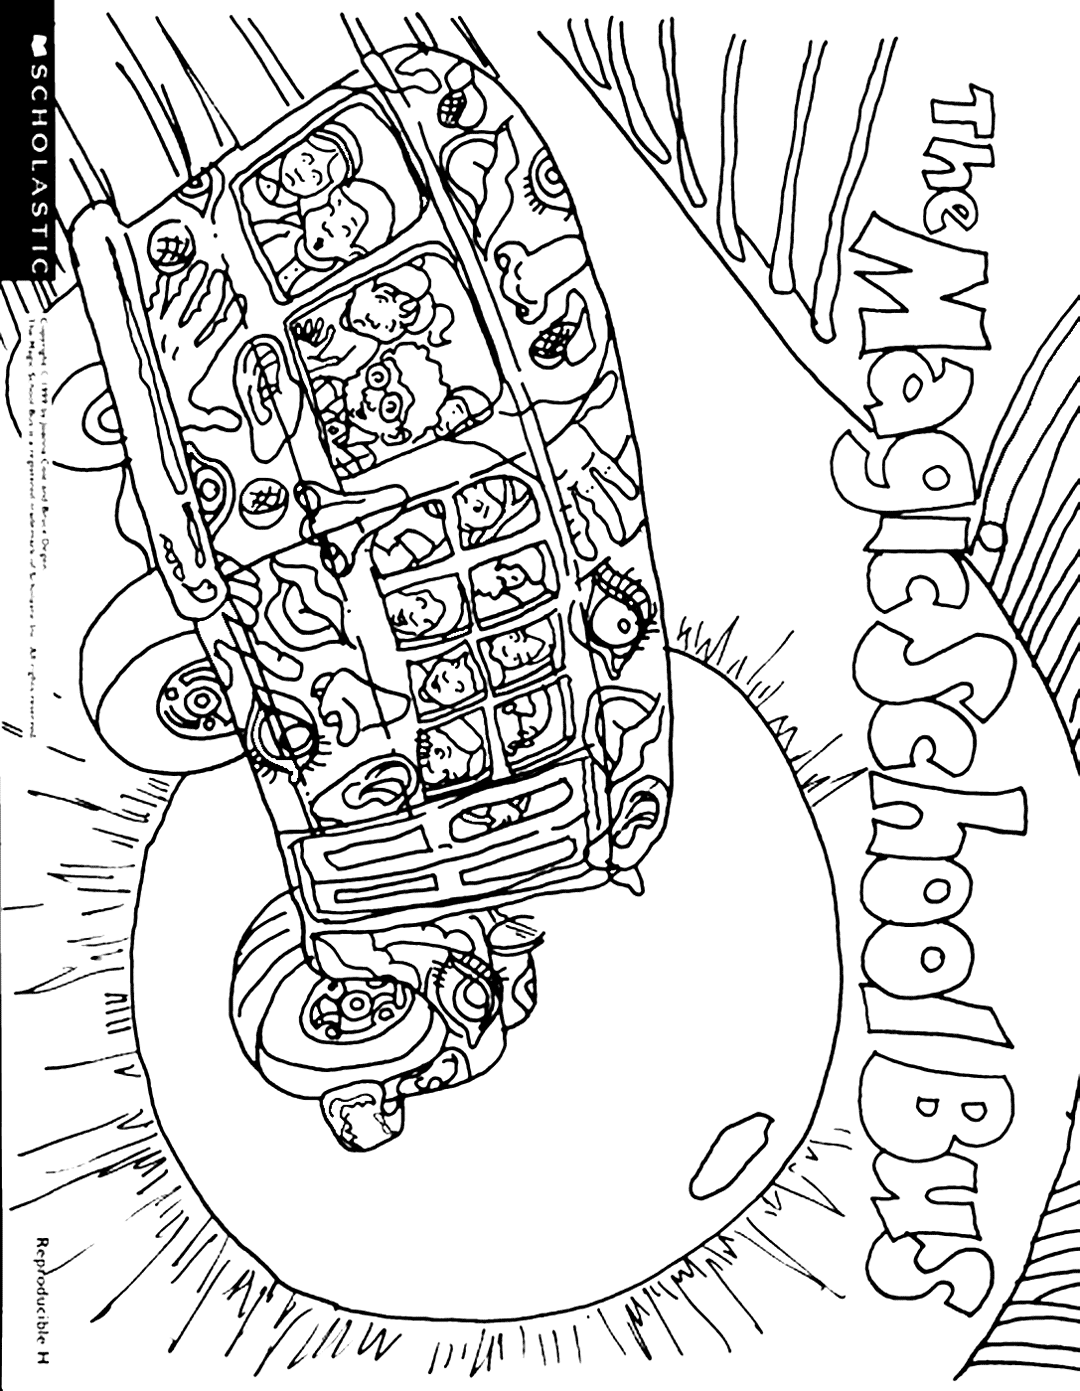 Magic School Bus Printable Coloring Pages